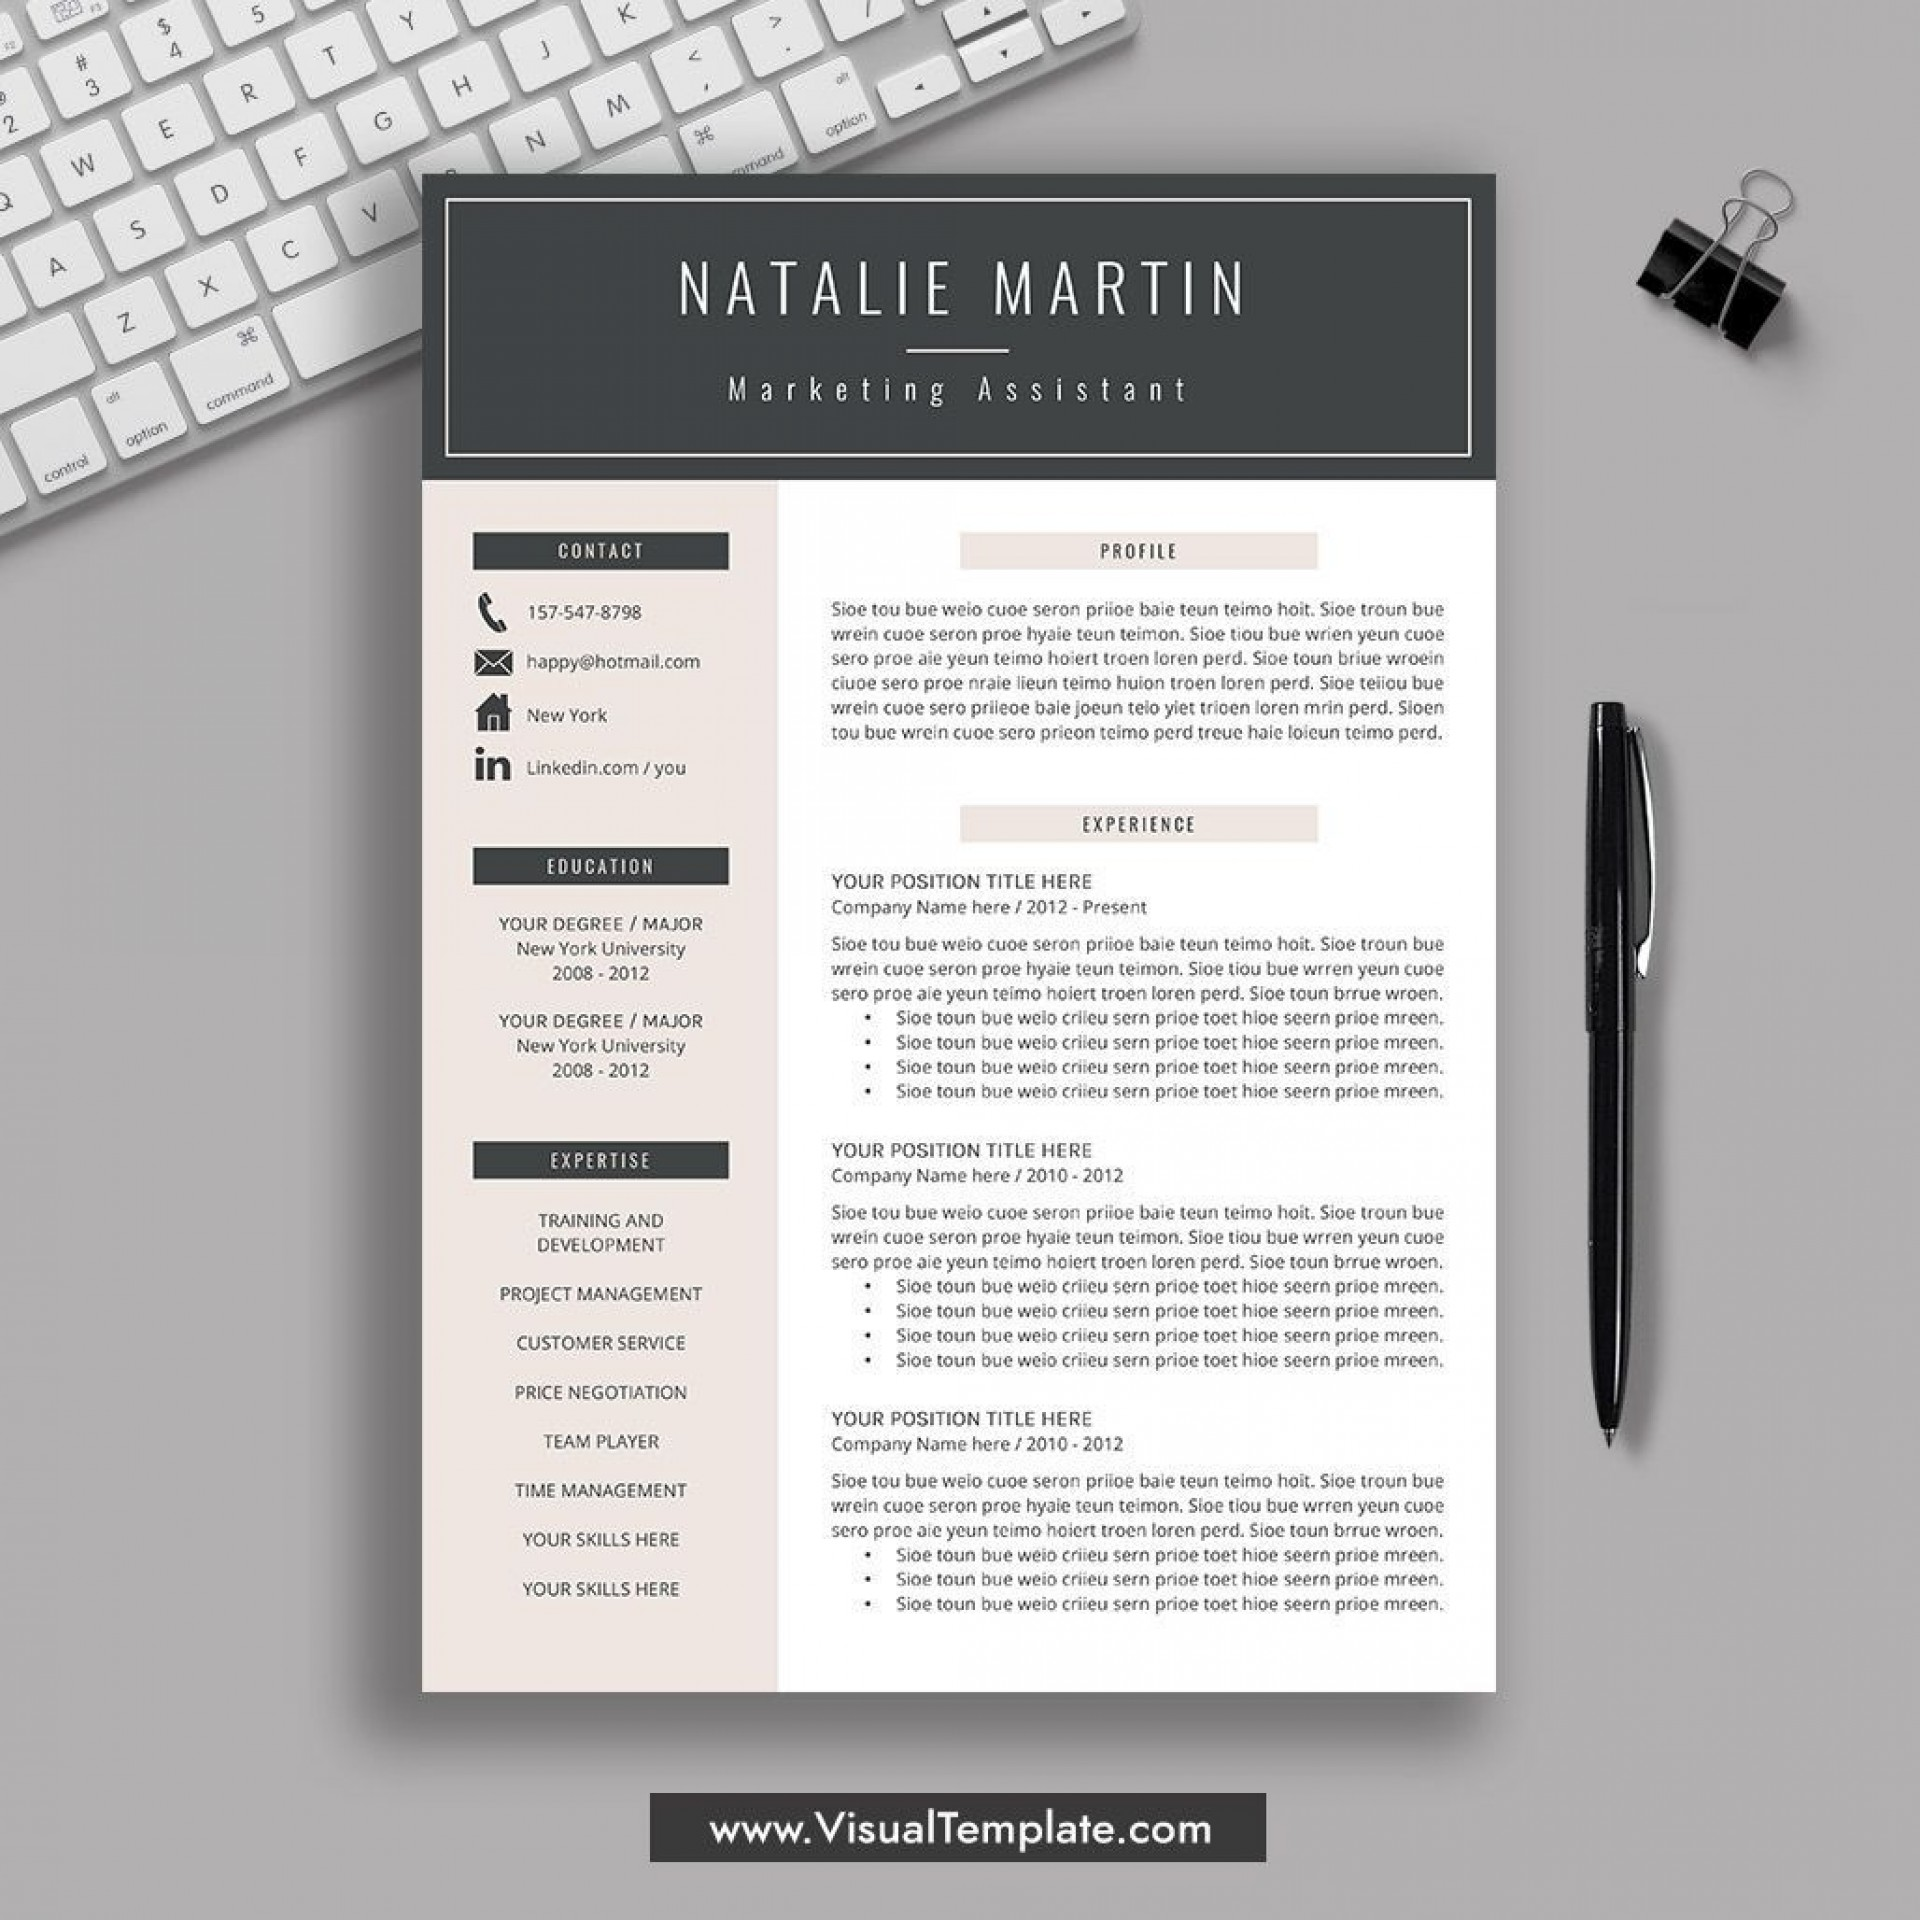 000 Shocking Microsoft Word Resume Template 2020 Example  Free1920